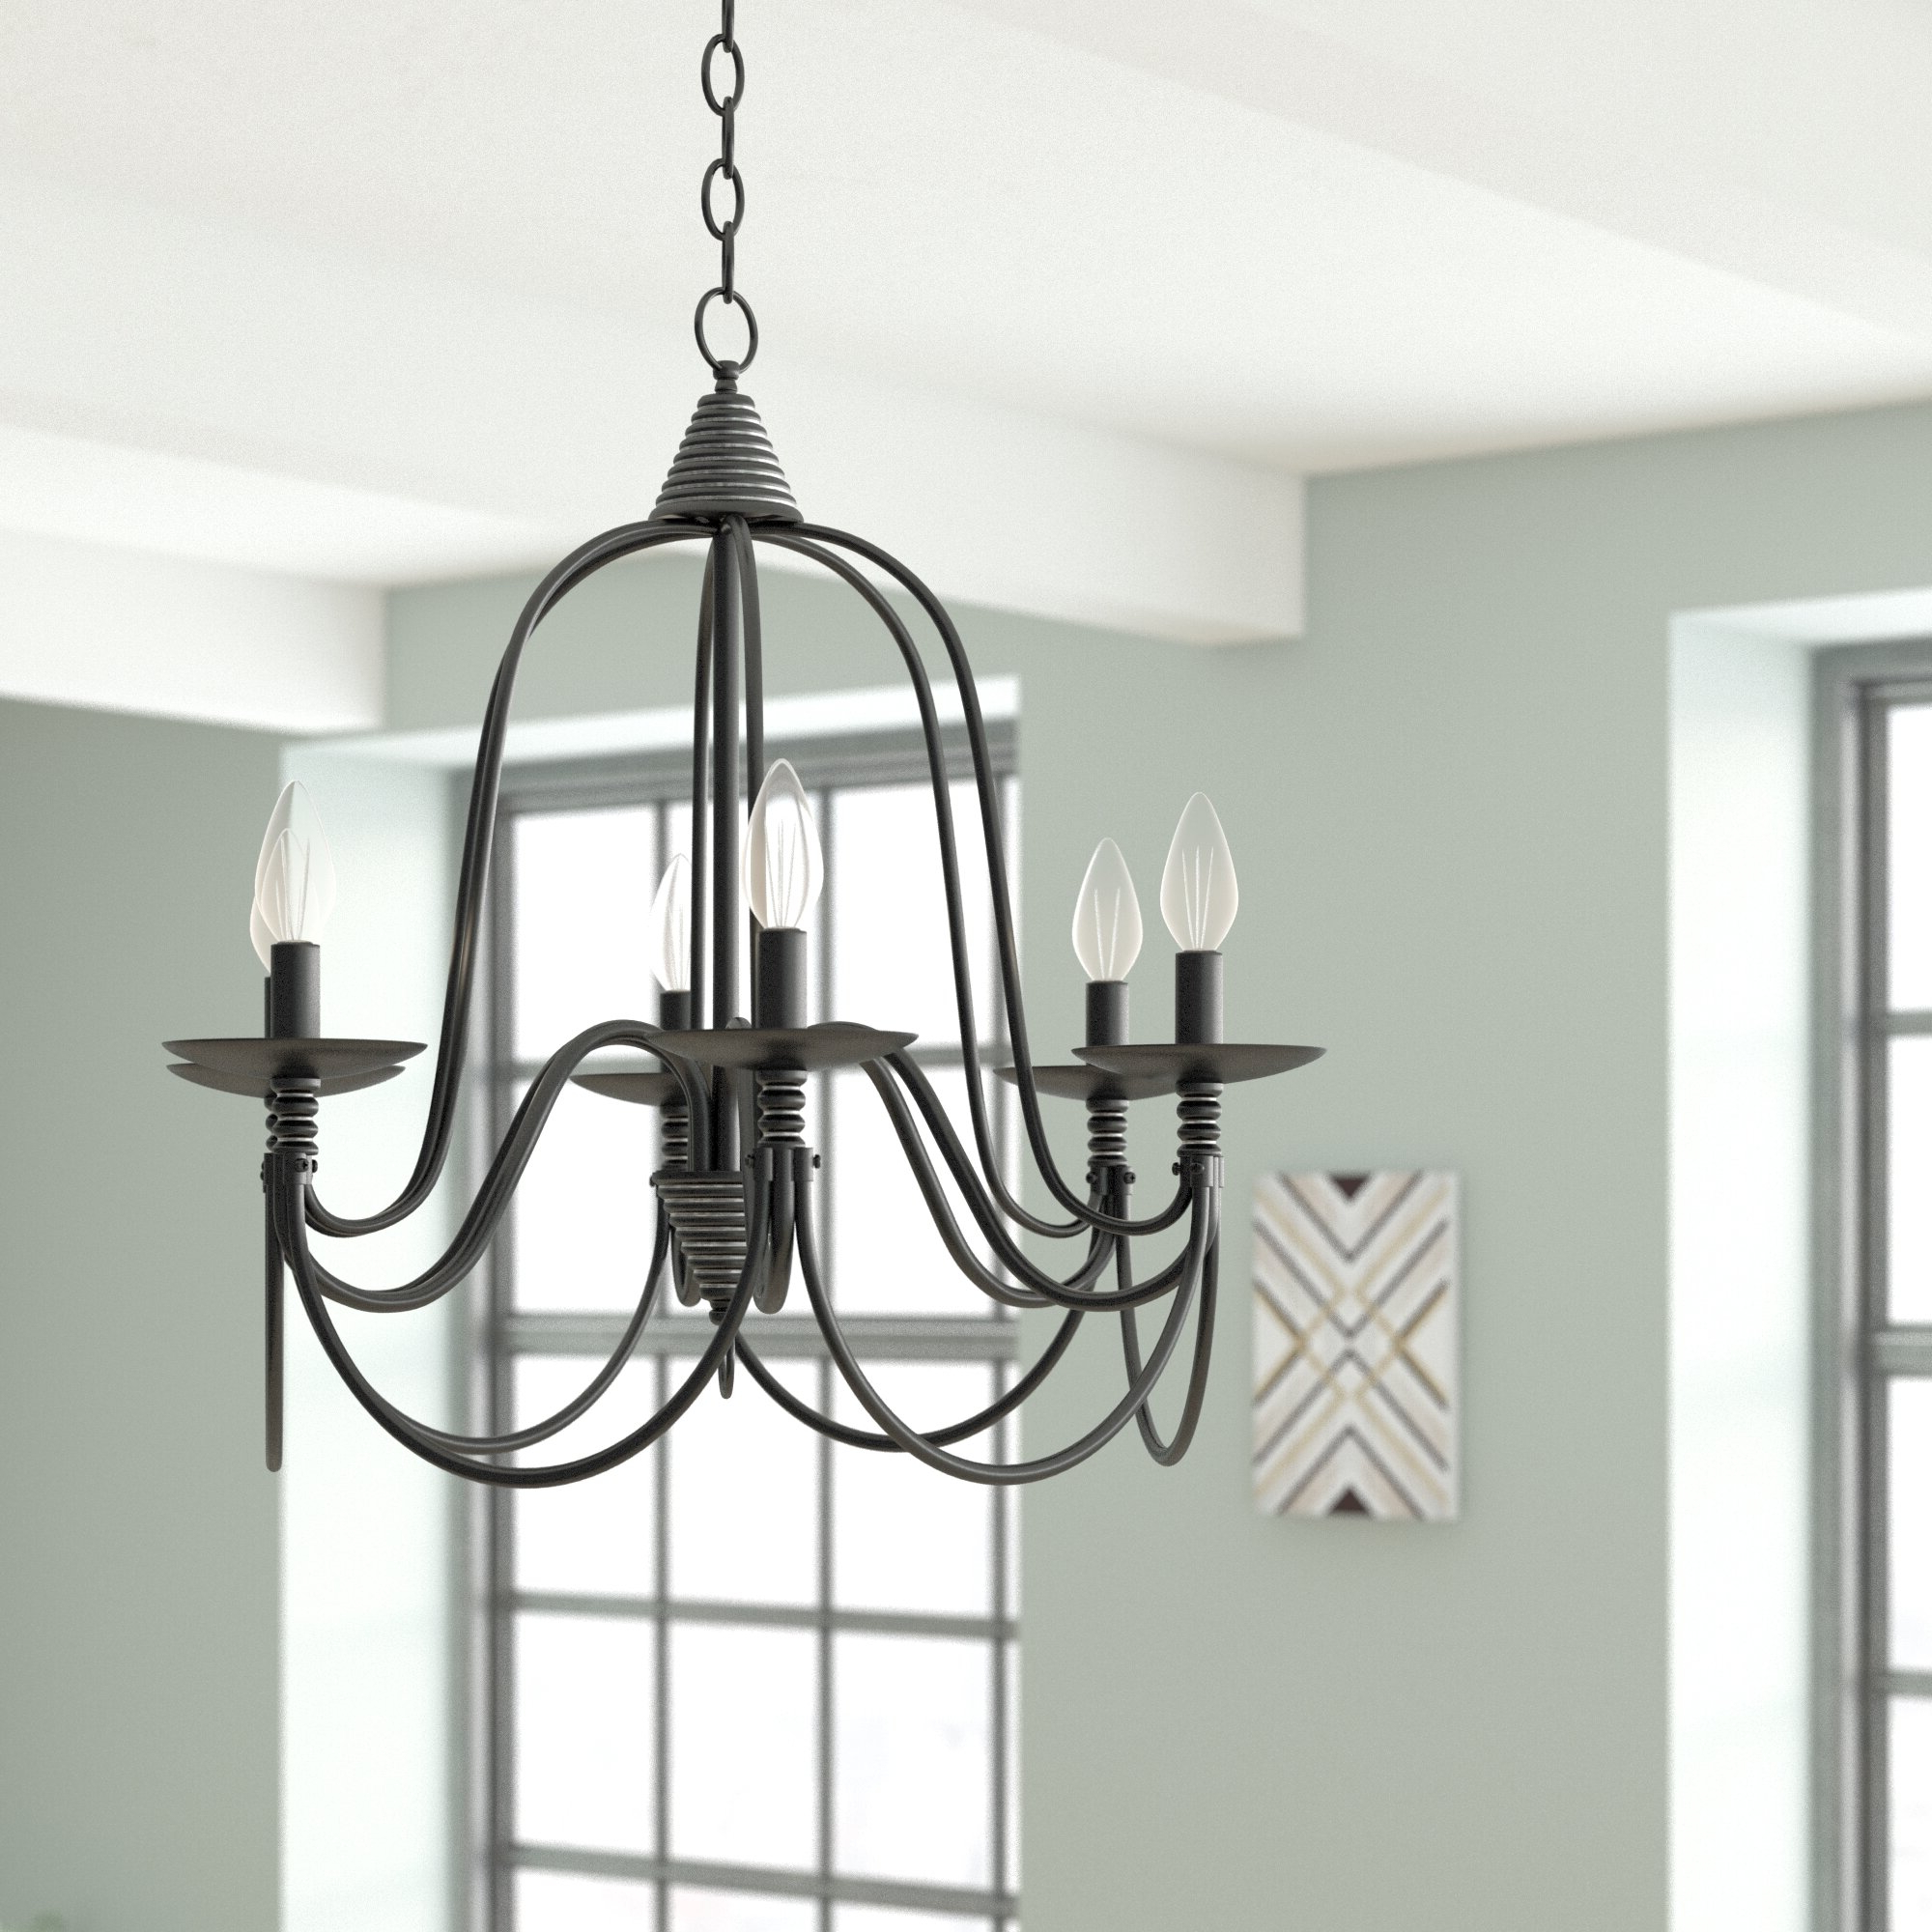 Vahe 6 Light Chandelier Intended For Most Recent Watford 6 Light Candle Style Chandeliers (Gallery 14 of 20)